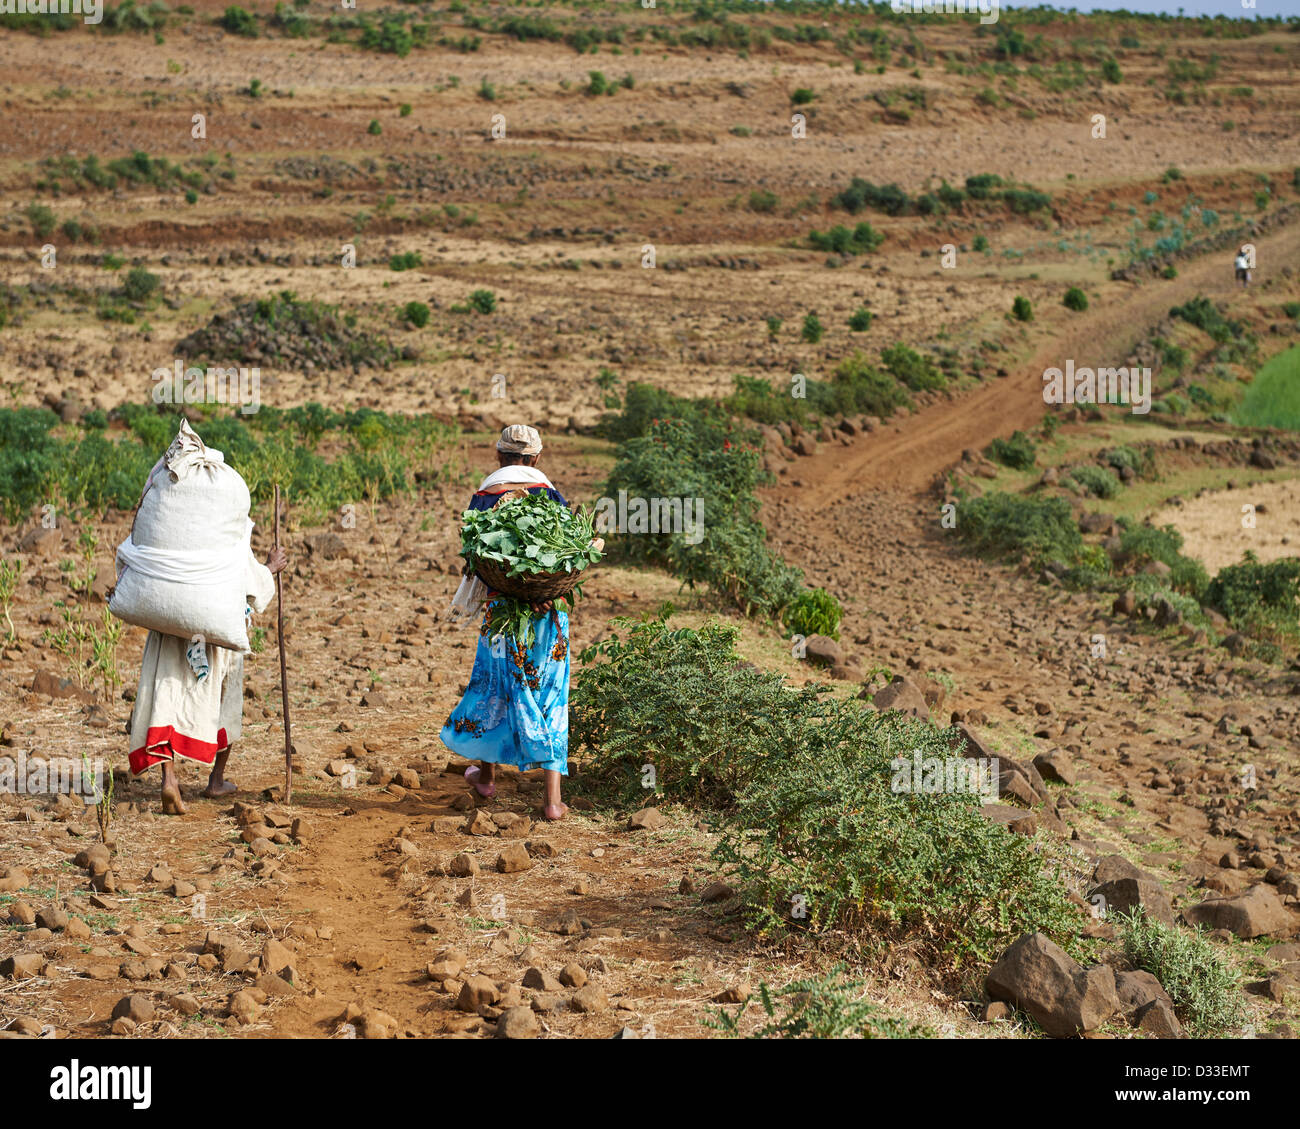 Local villagers carrying supply packs going to the market on a dirt path - Stock Image